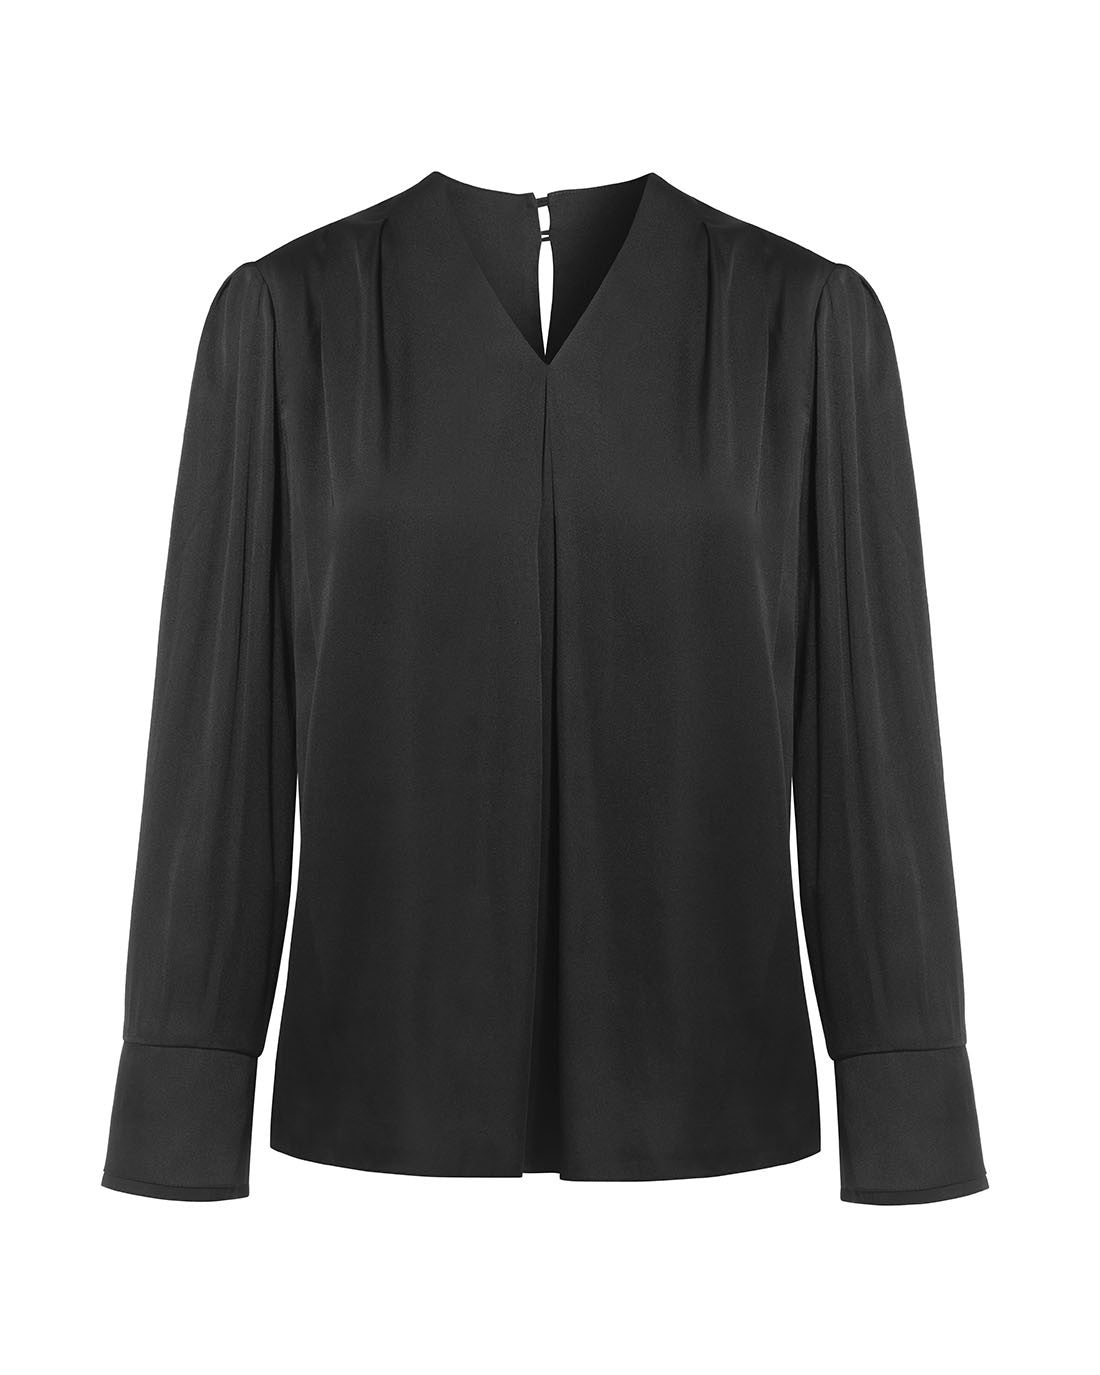 V-neck satin office blouse with double cuffs for work black